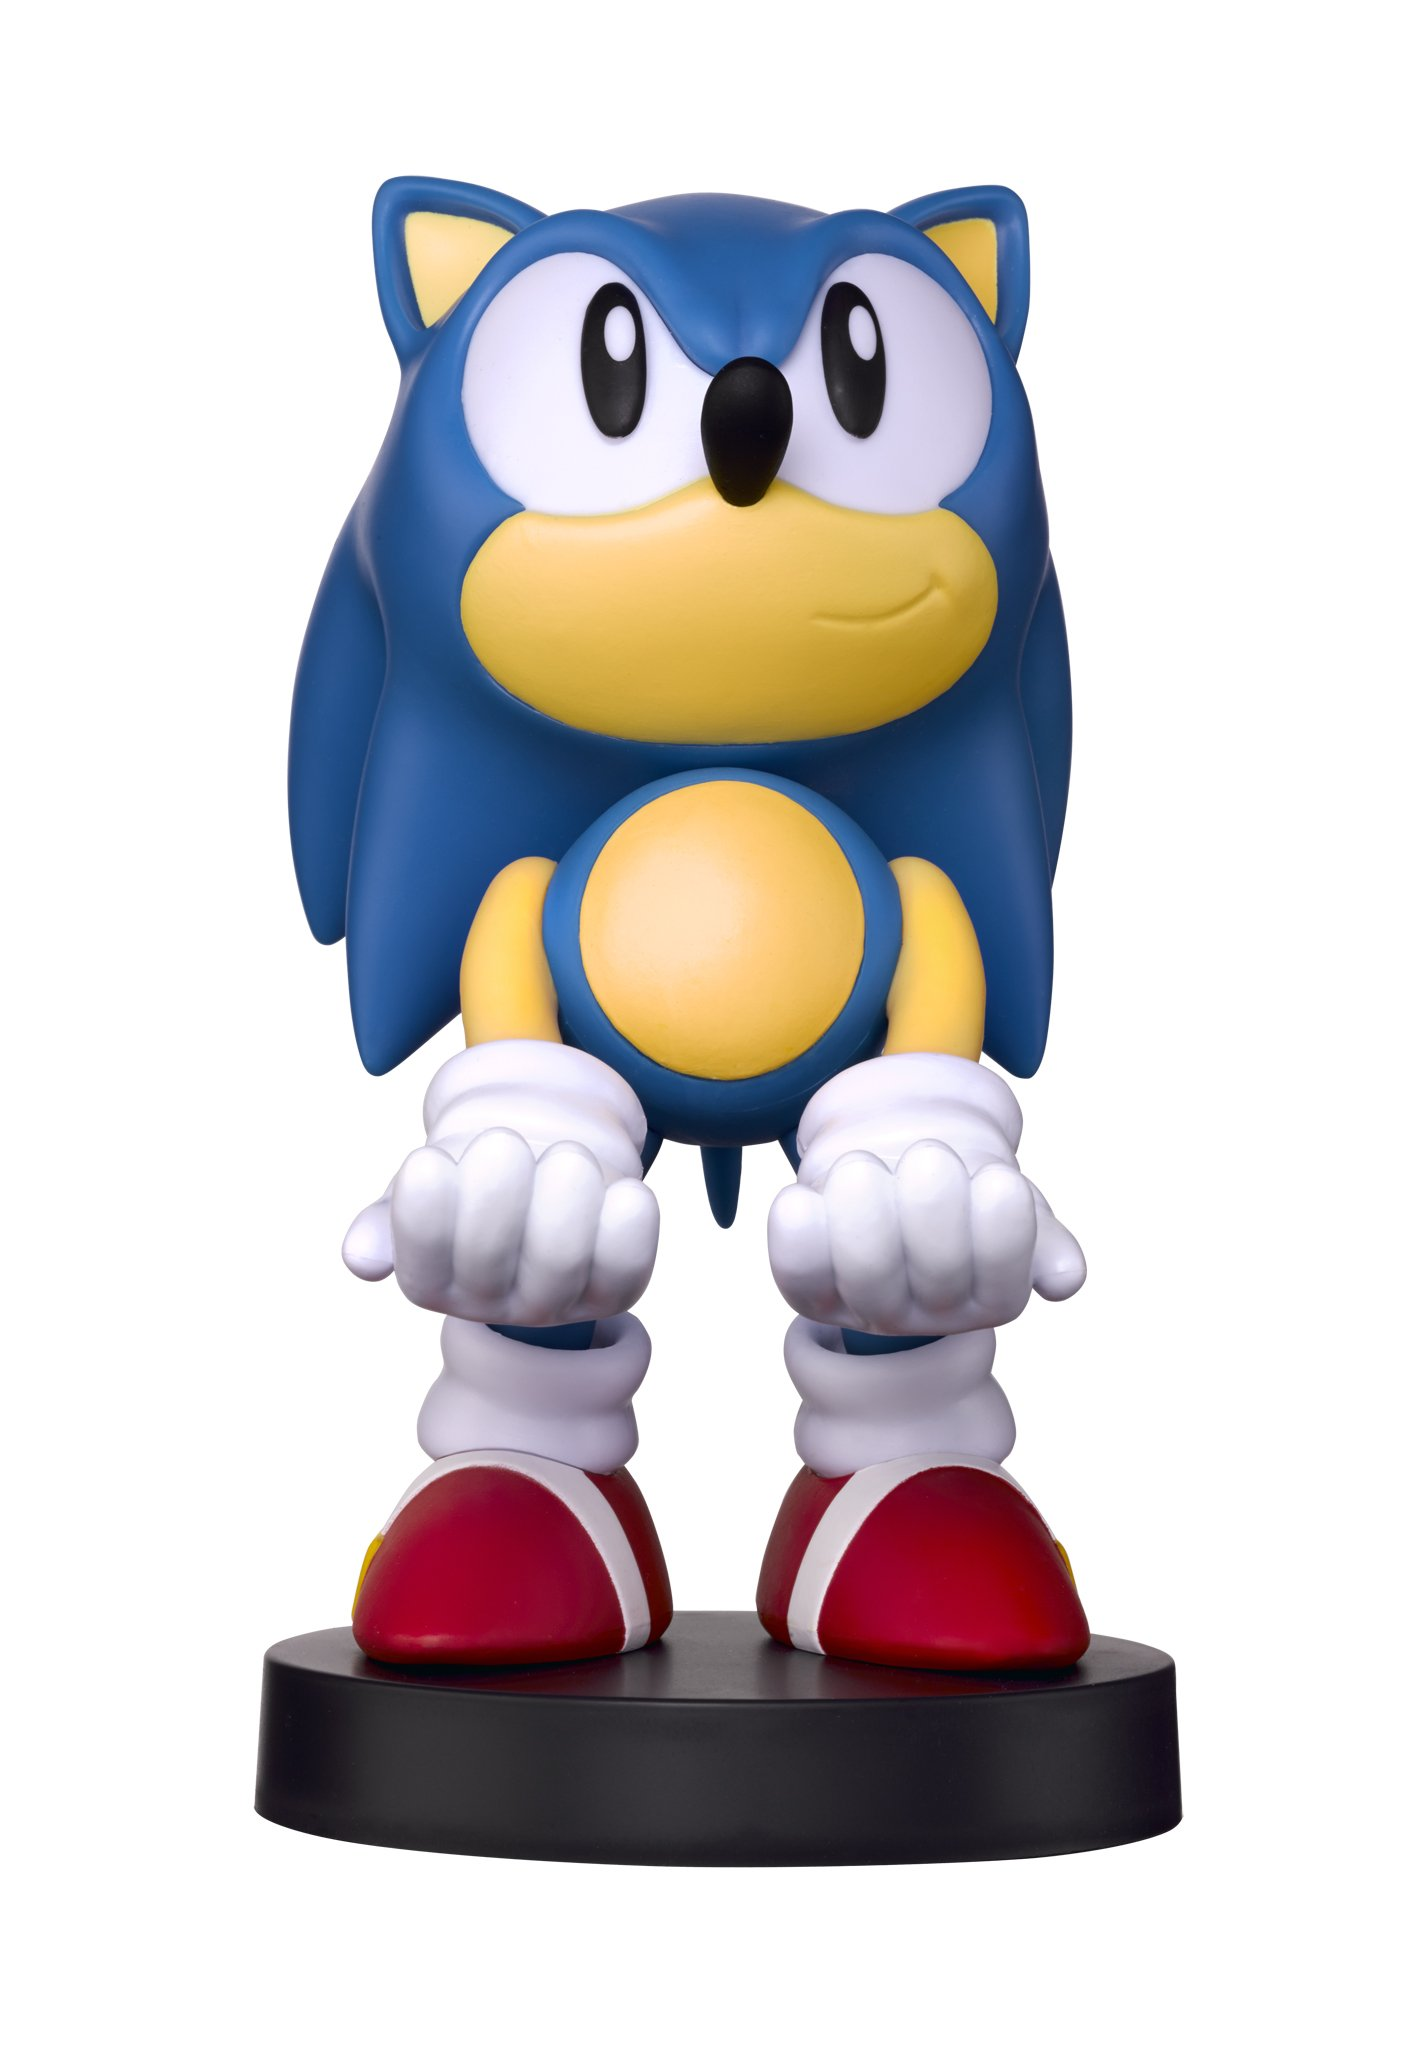 Collectible Sonic the Hedgehog Cable Guy Device Holder - works with PlayStation and Xbox controllers and all Smartphones -  Classic Sonic - Not Machine Specific by Exquisite Gaming